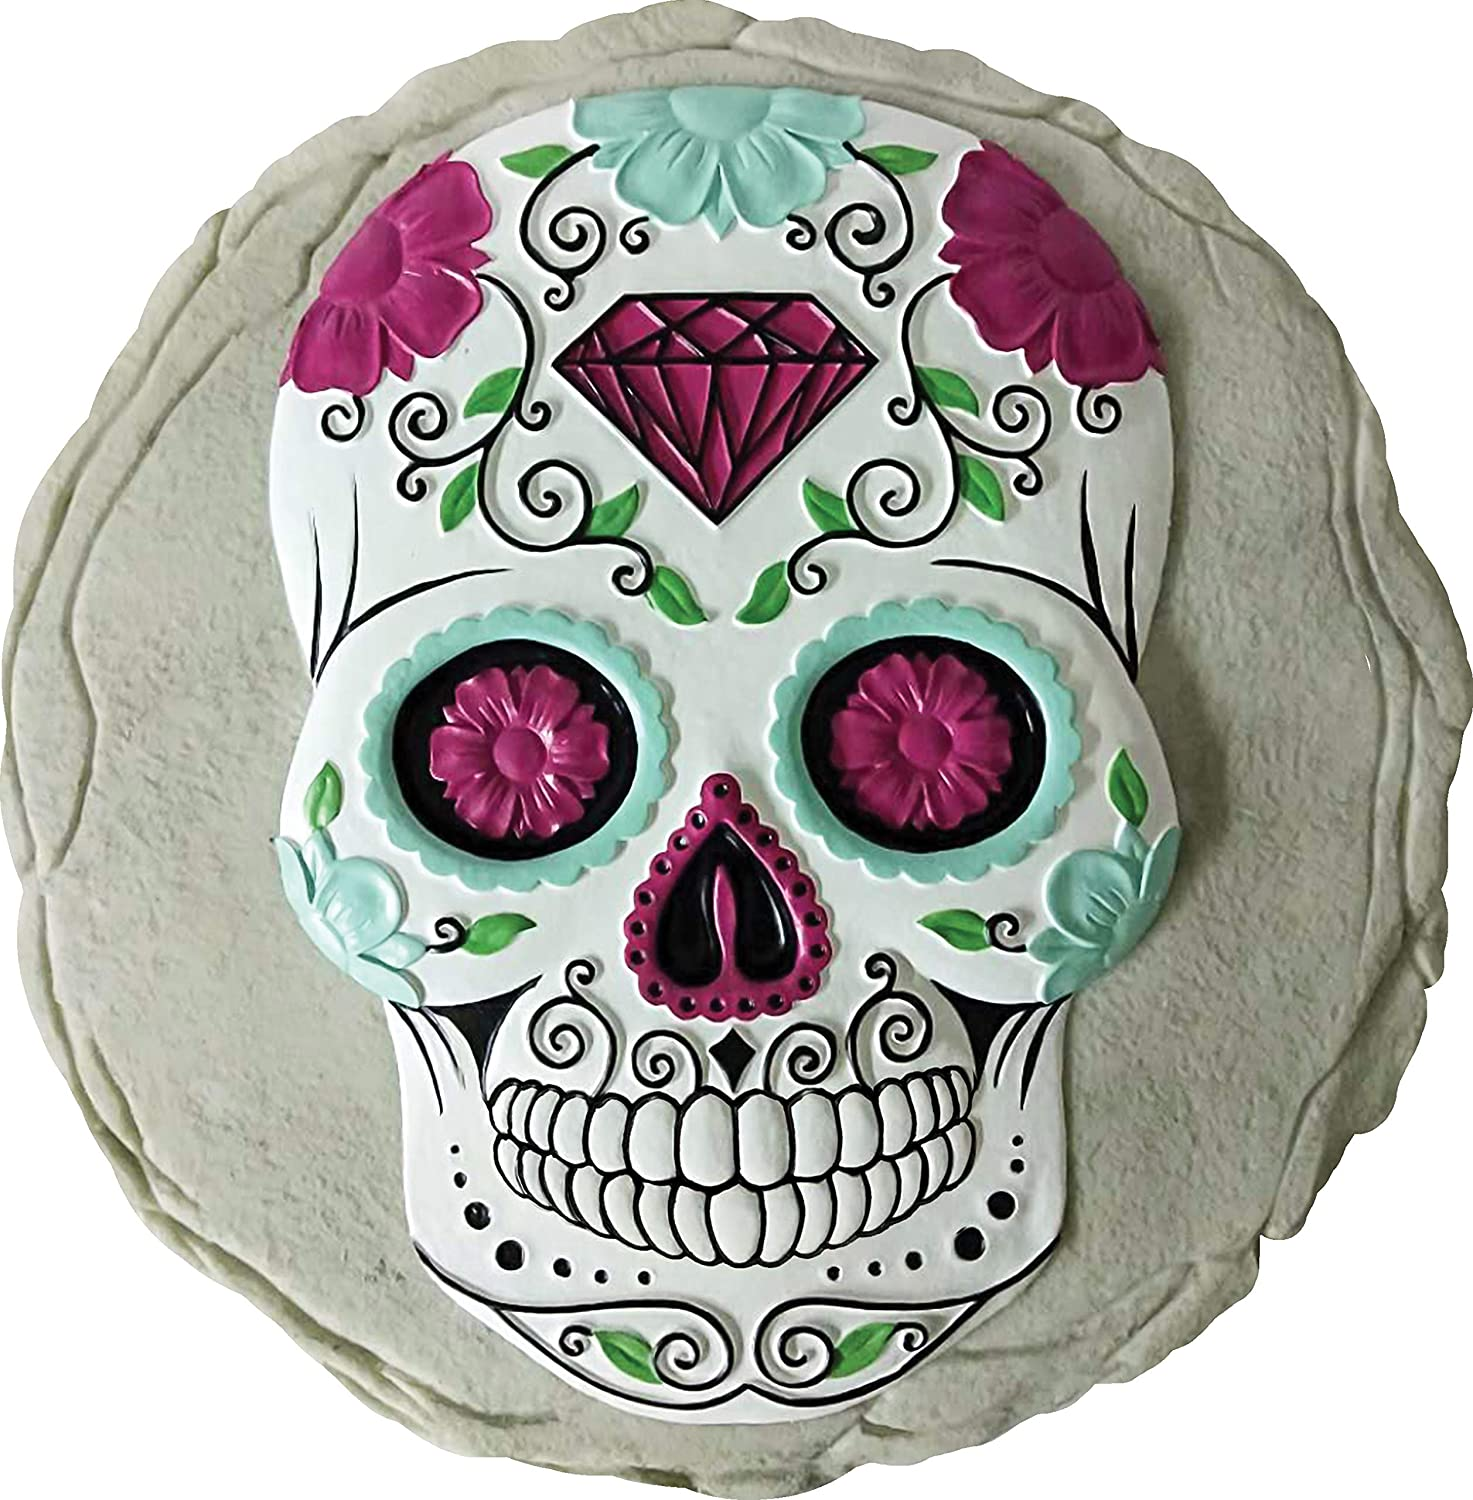 Spoontiques 13212 Sugar Skull Stepping Stone, Multicolor